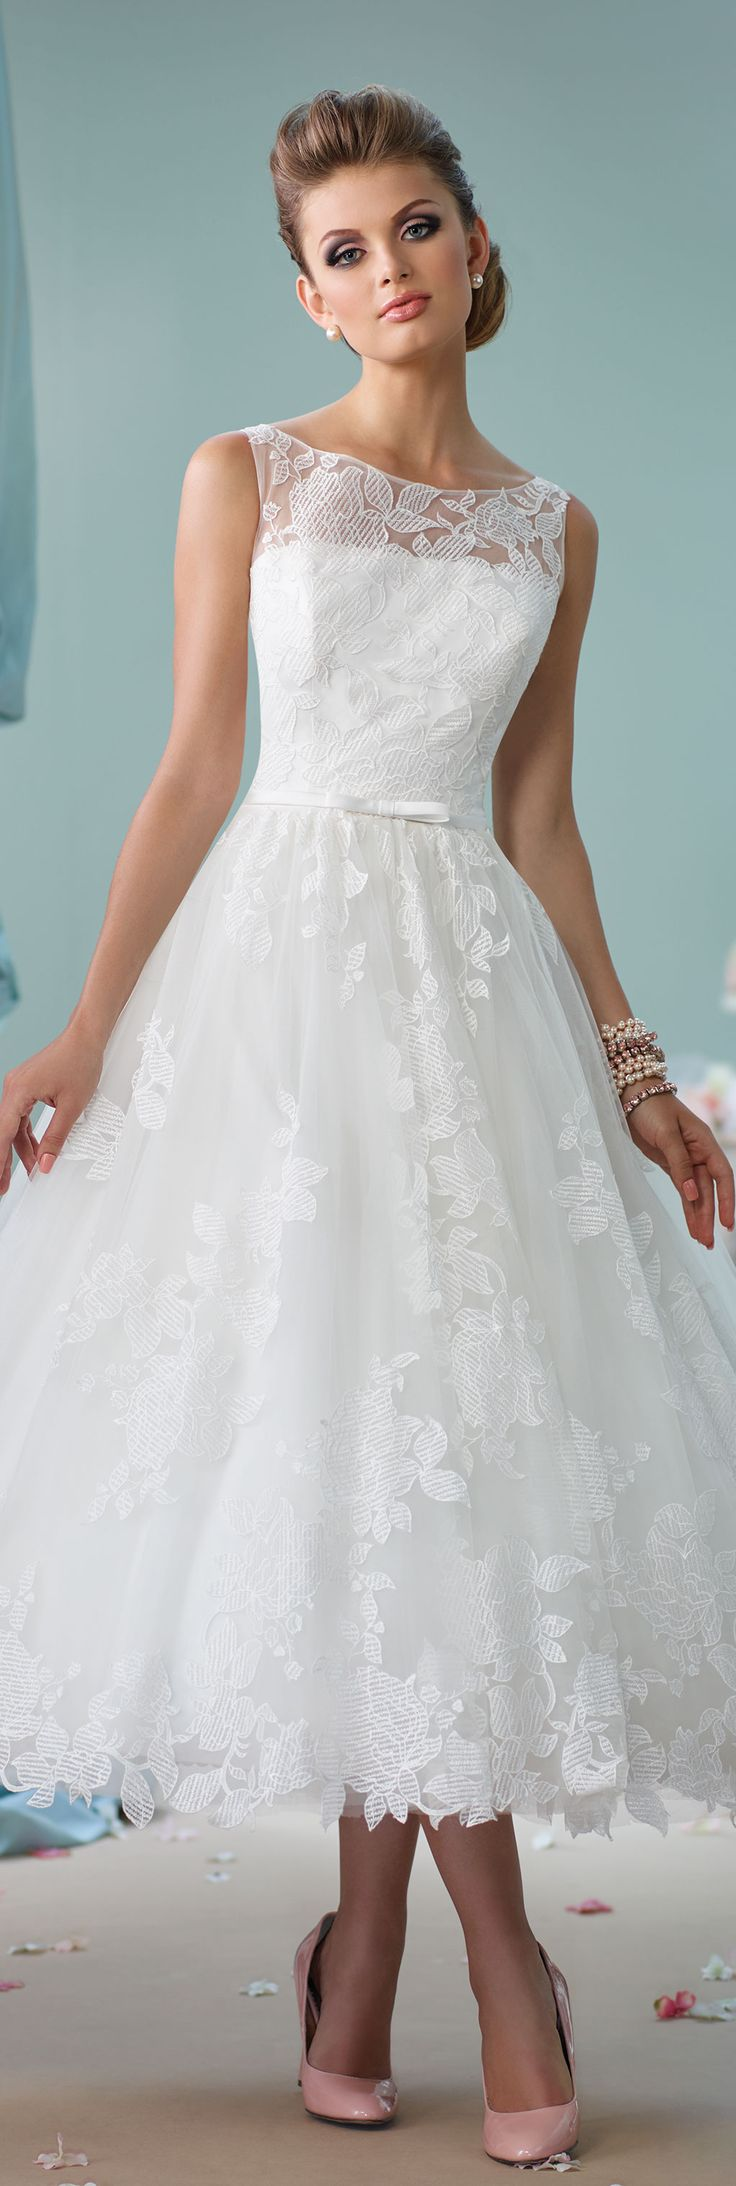 Wedding Dresses by Mon Cheri - Enchanting Spring 2016 ~Style No. 116136 #shortlaceweddingdress